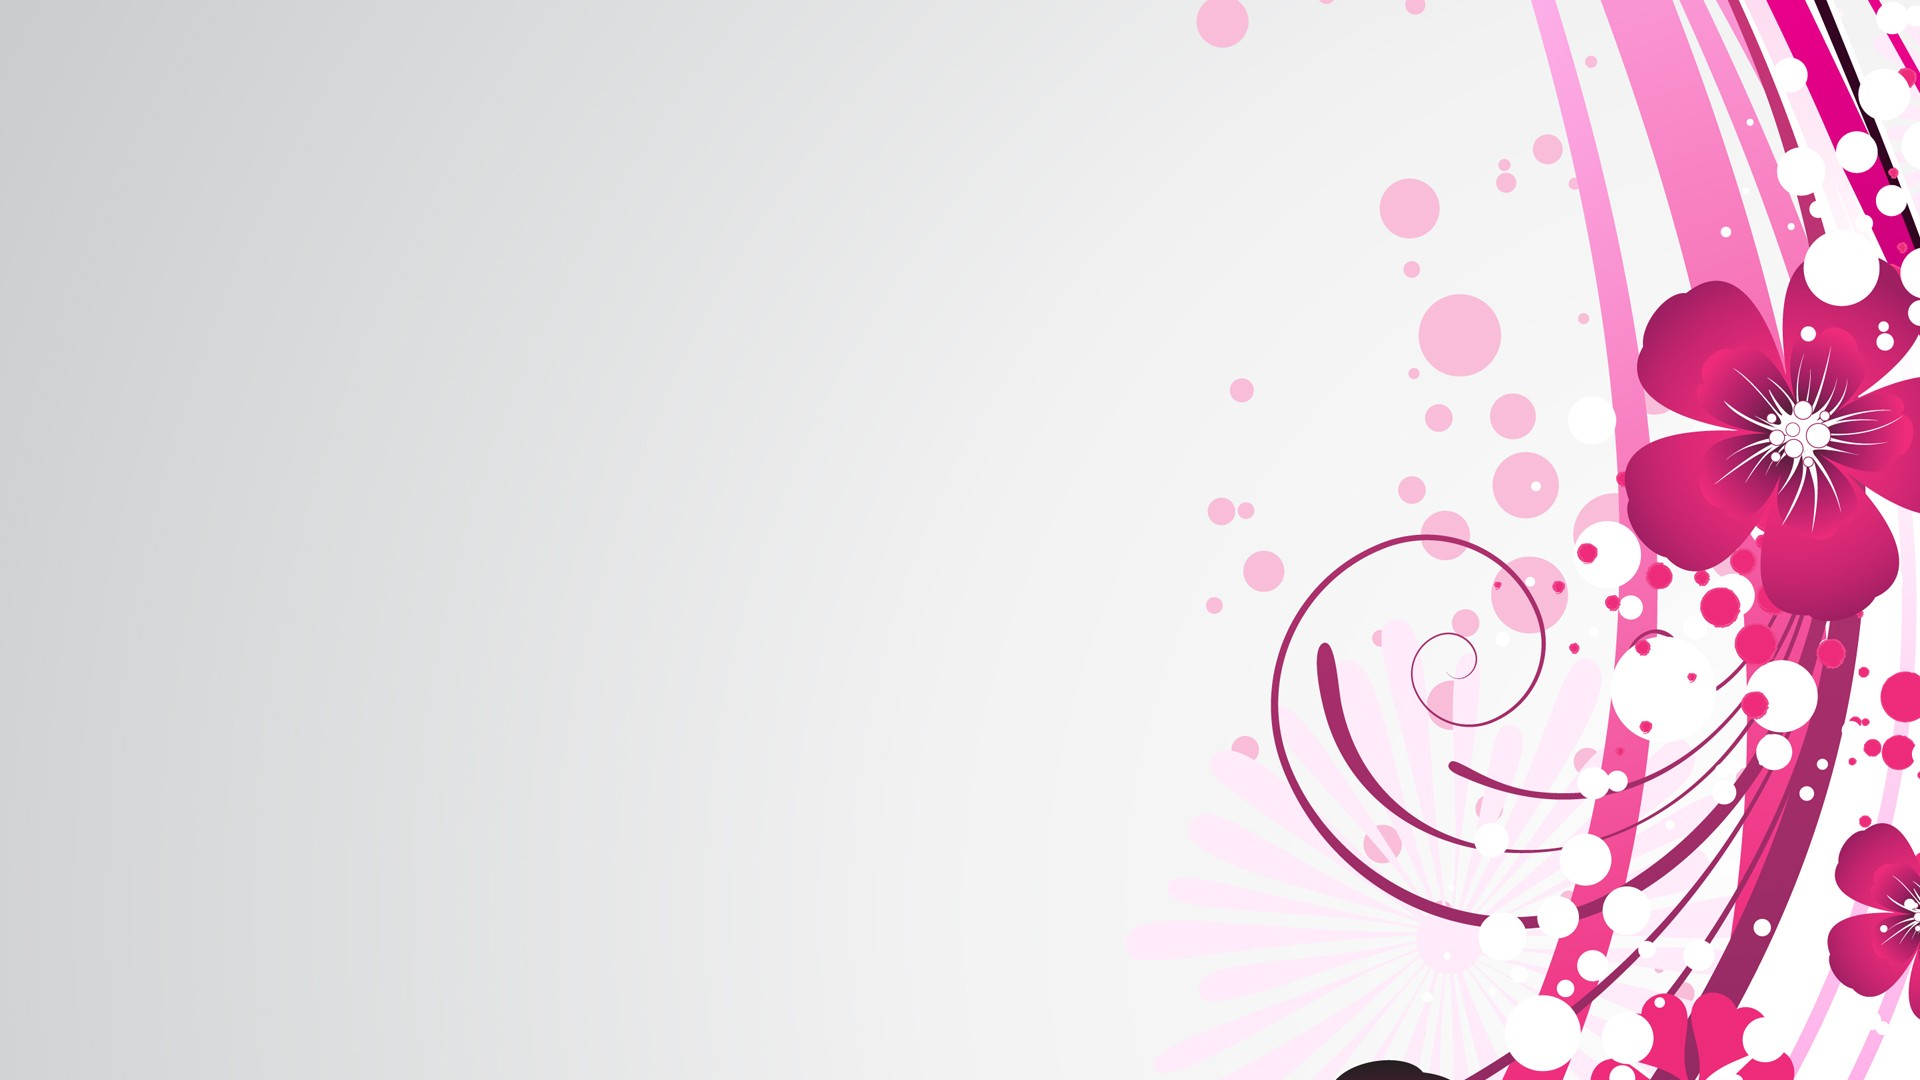 pink and white background - HD1920×1080